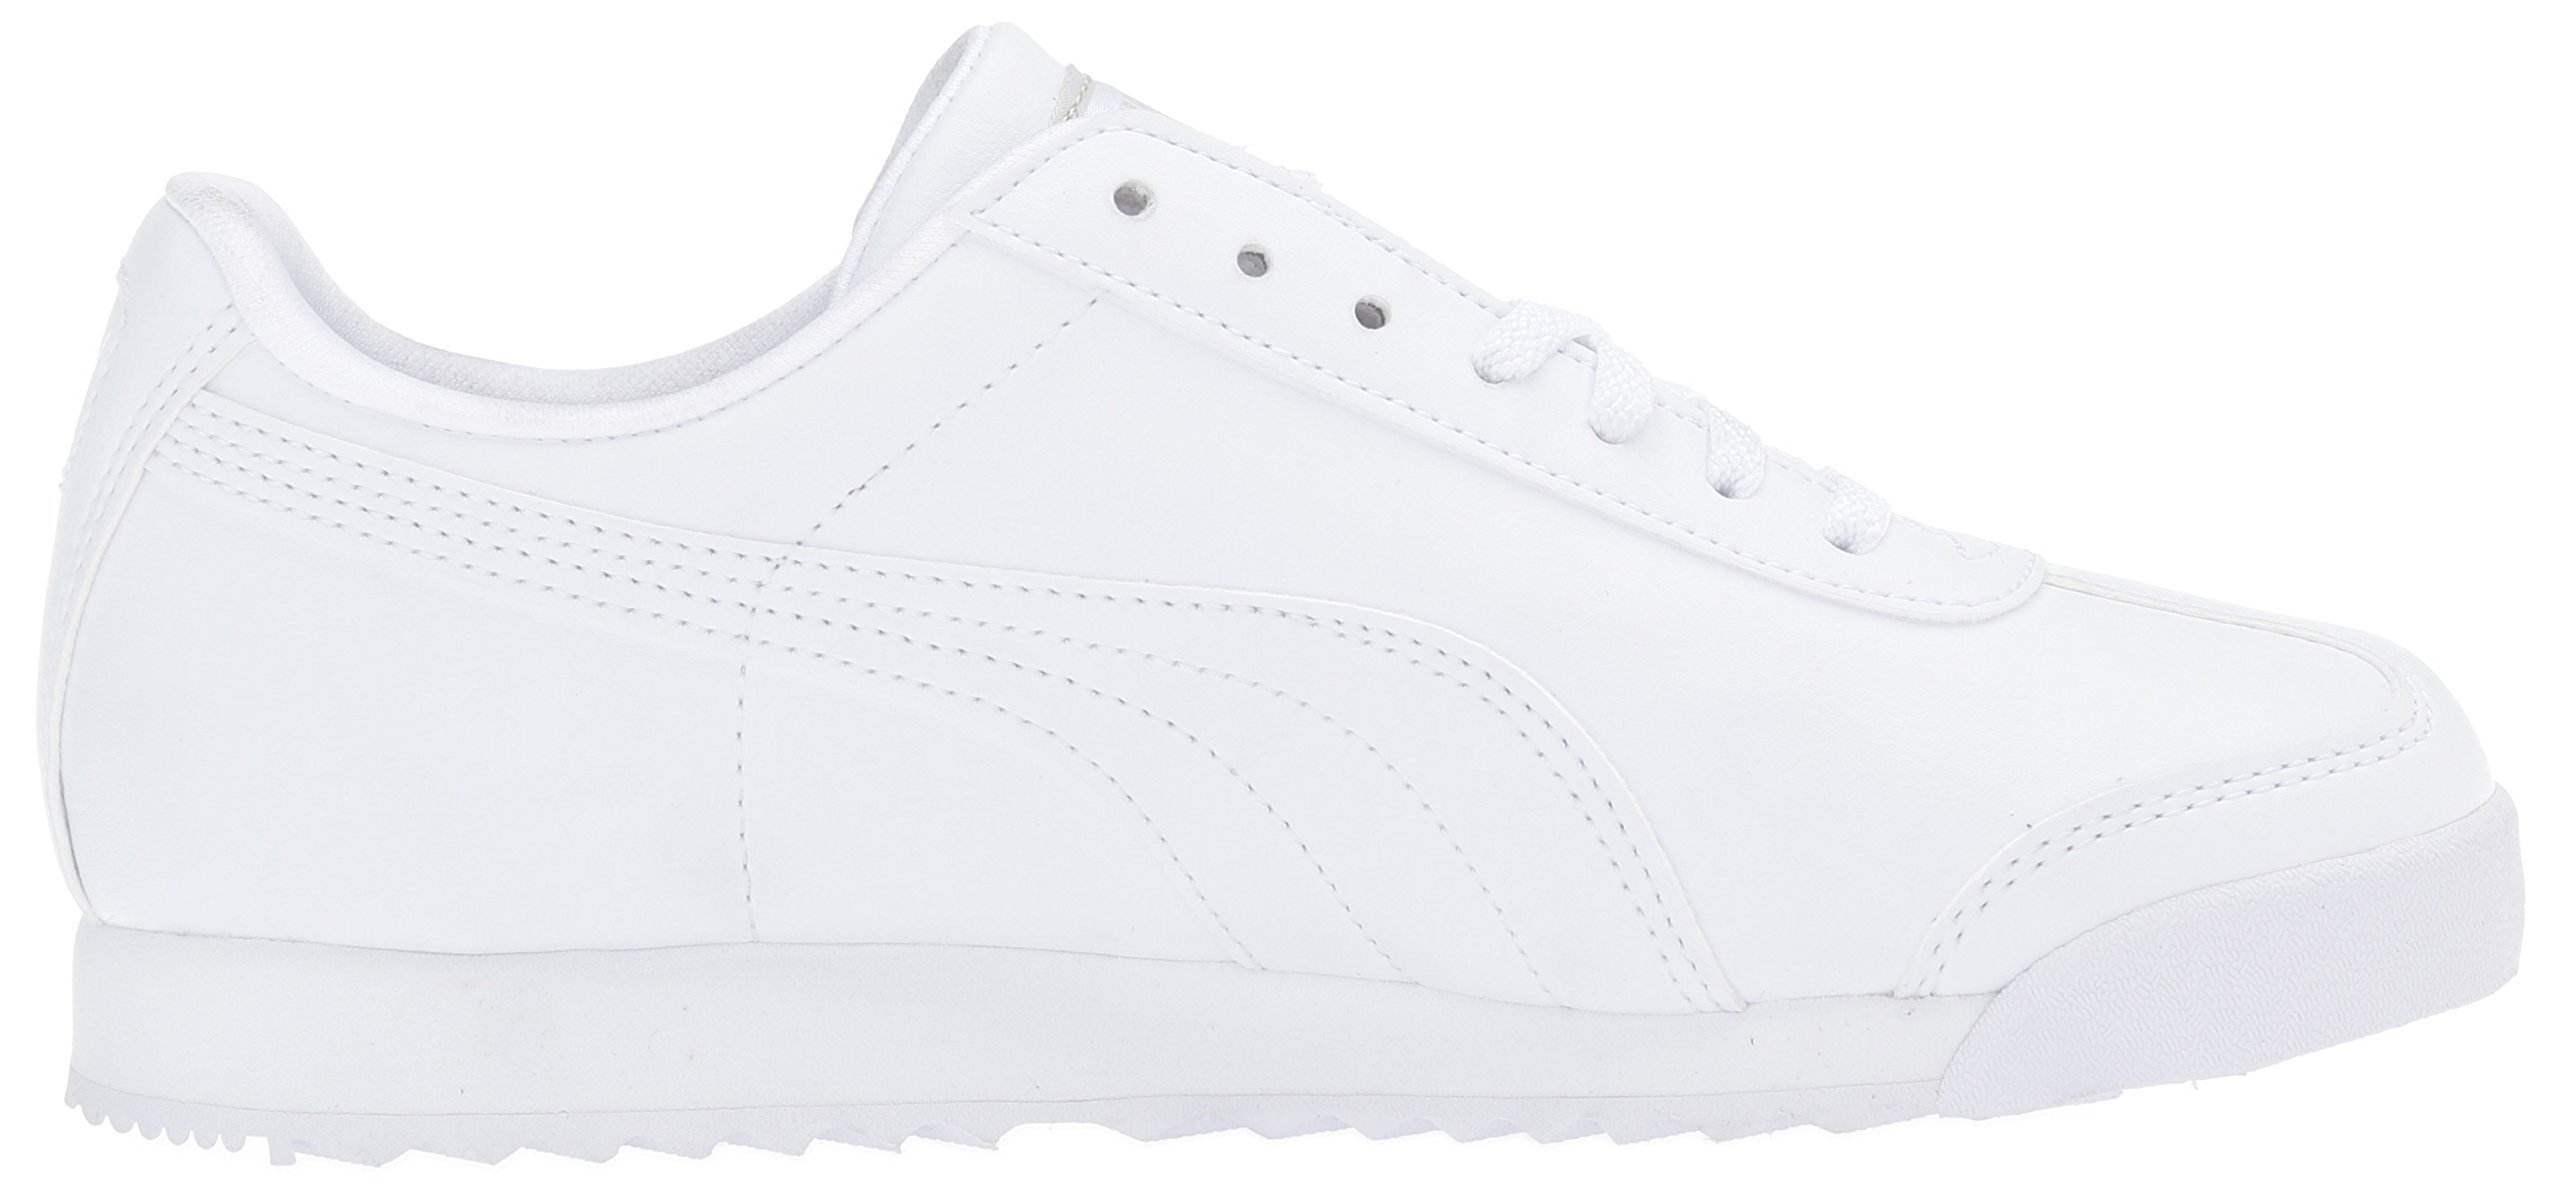 PUMA Roma Basic JR Sneaker , White/Light Gray, 3 M US Little Kid by PUMA (Image #7)